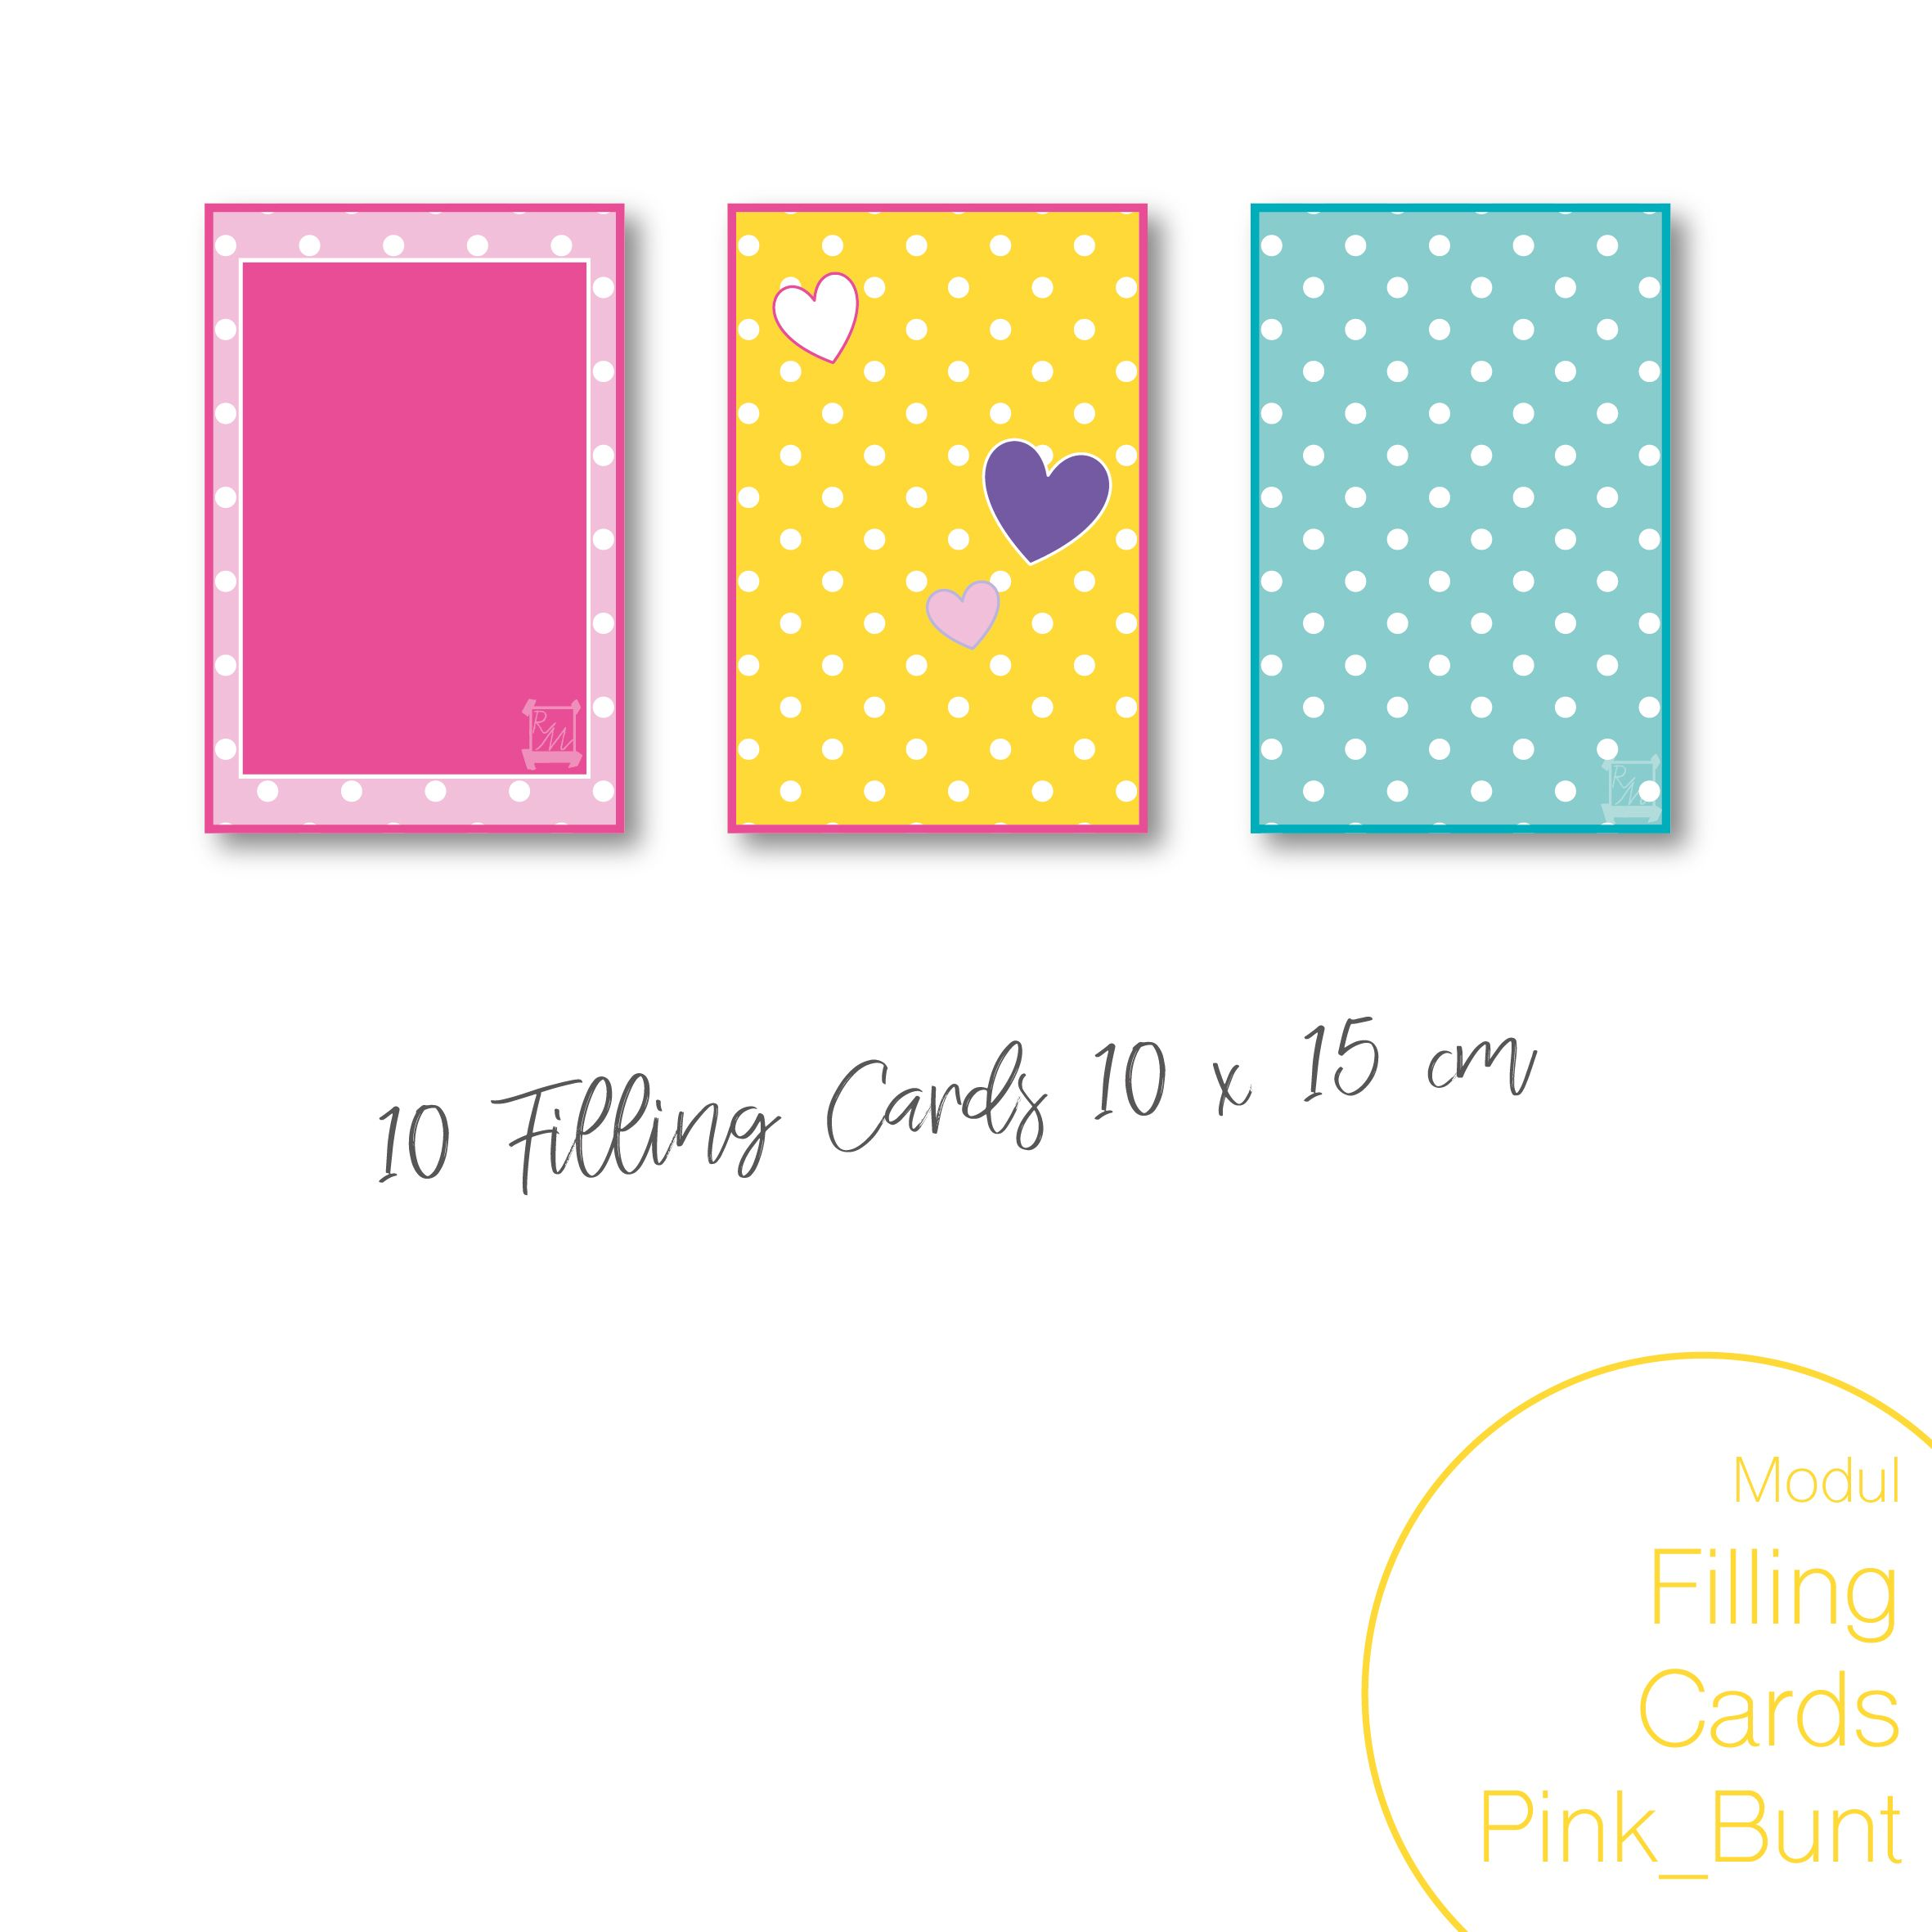 Dein Remember-Me Modul Filling-Cards Gross Pink_Bunt